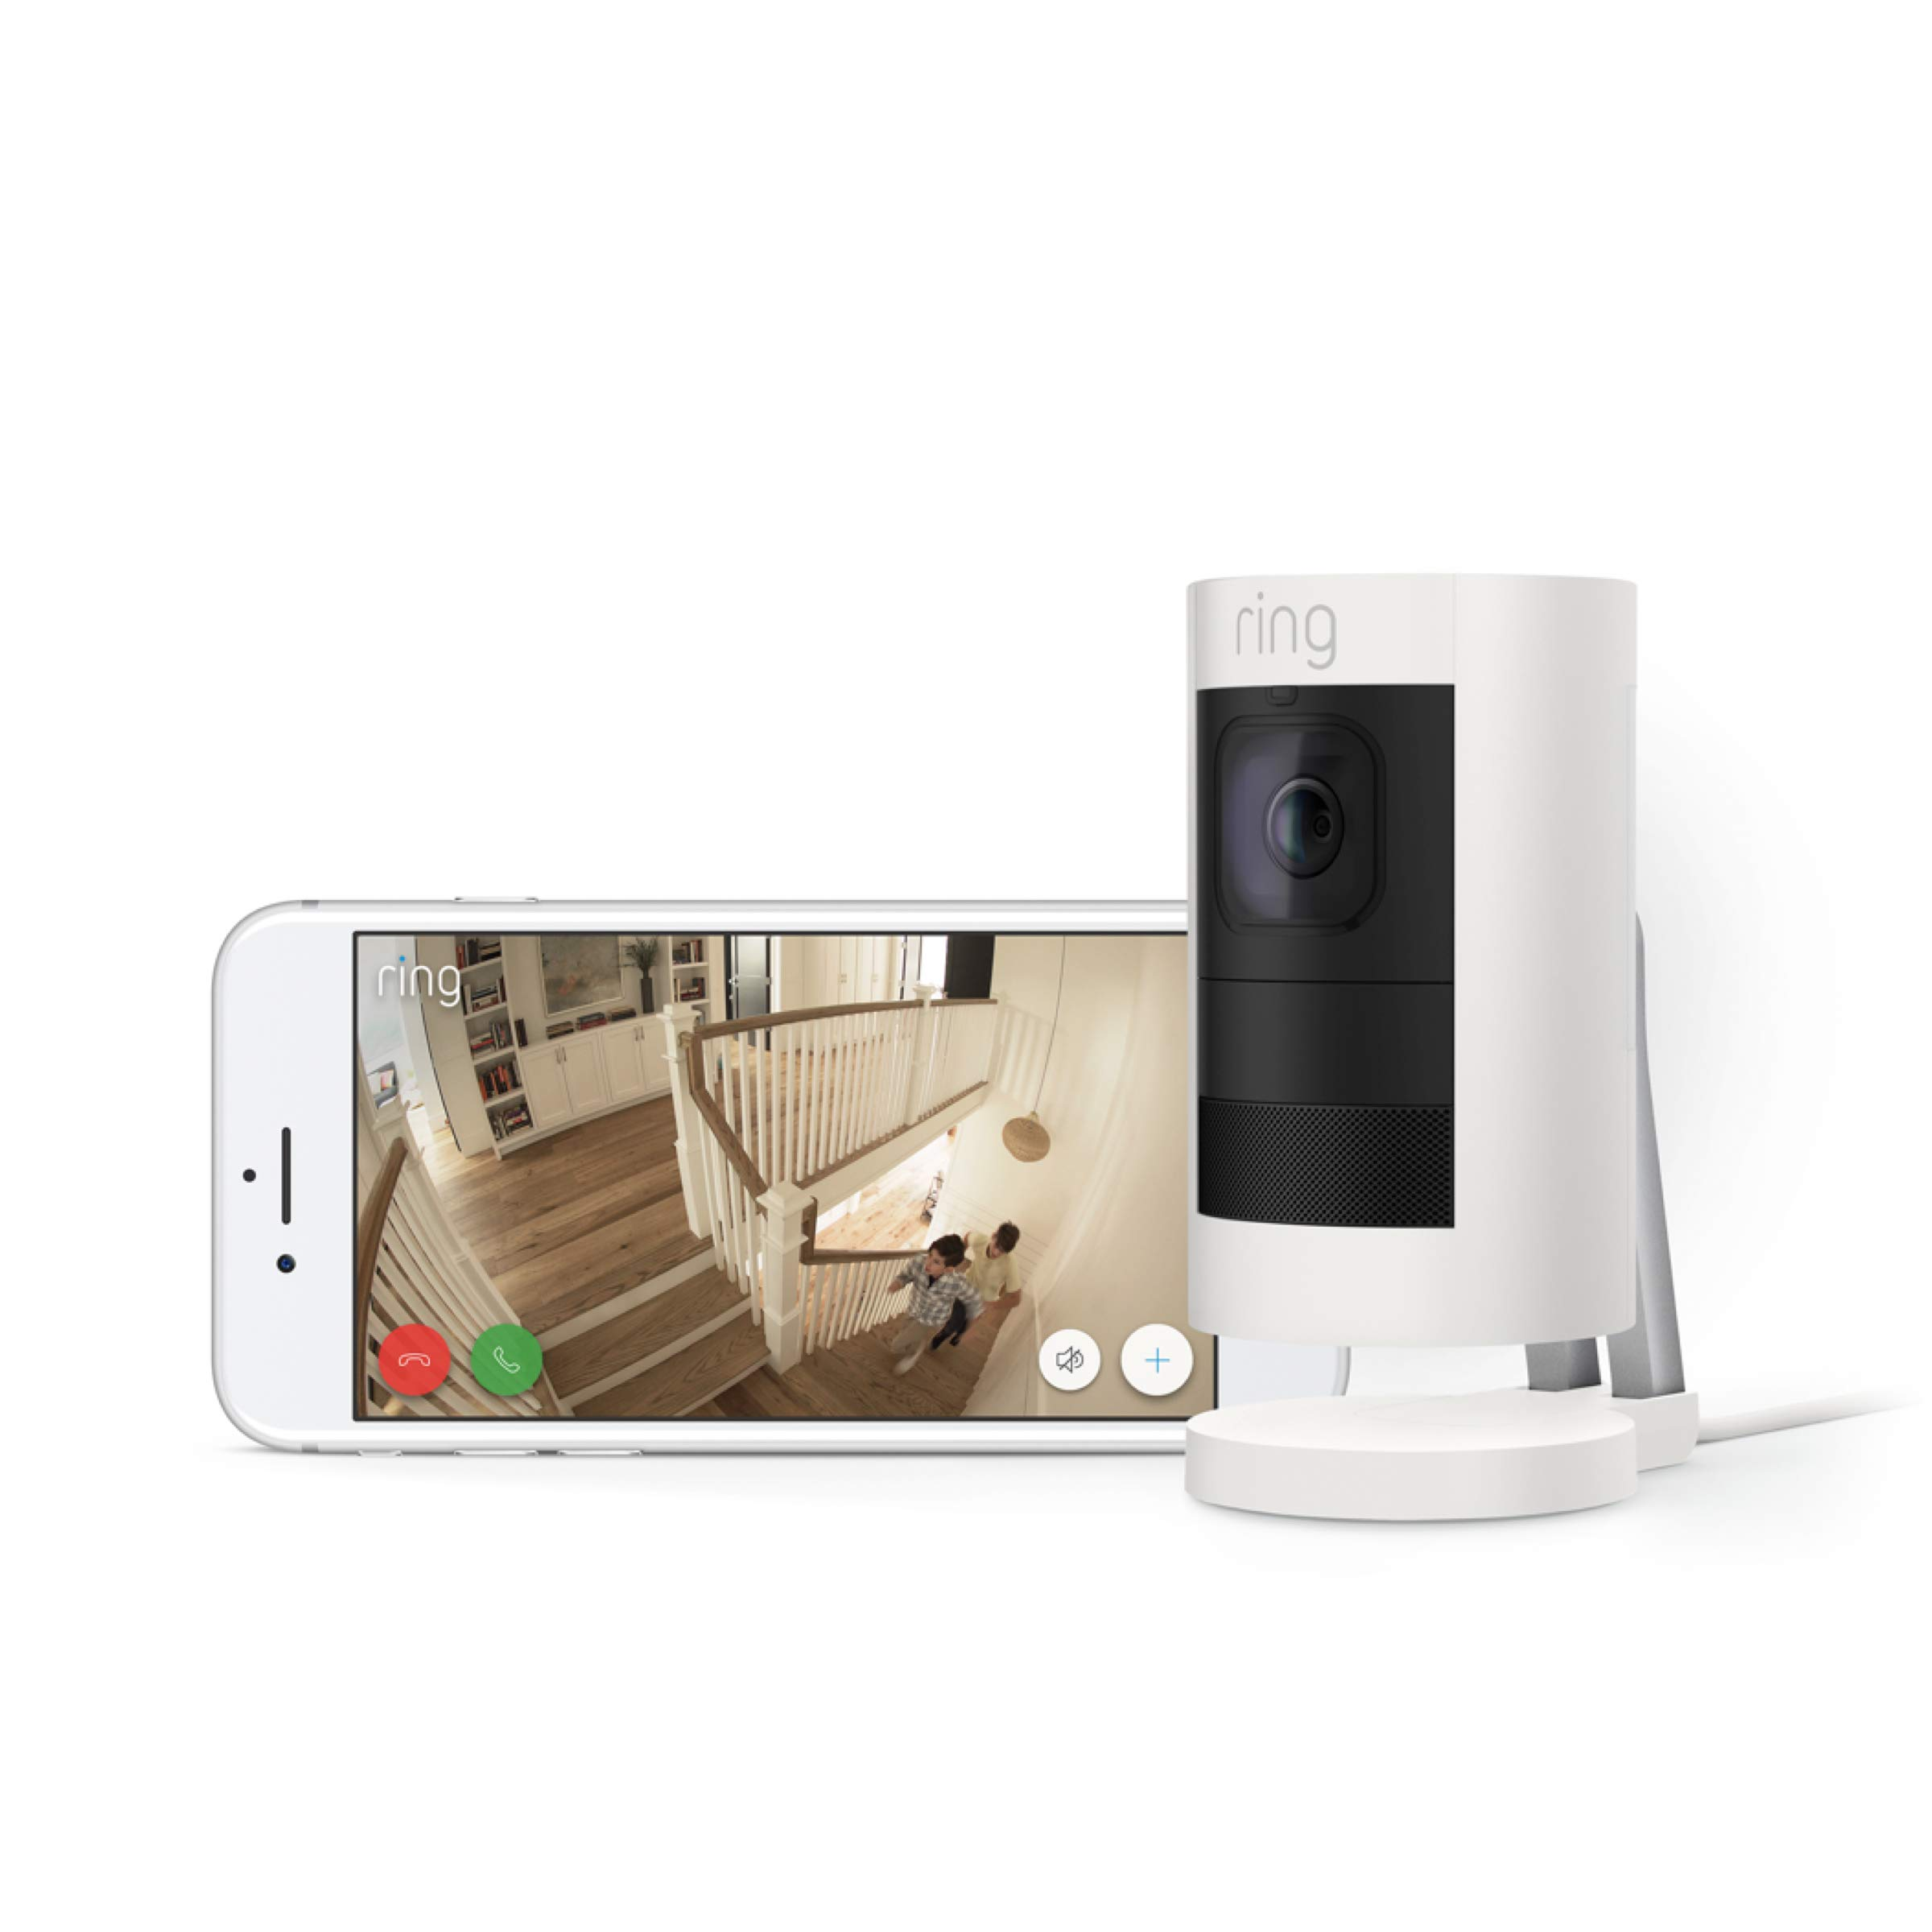 Ring Stick Up Cam Wired HD Security Camera with Two-Way Talk, Night Vision, White, Works with Alexa by Ring (Image #6)